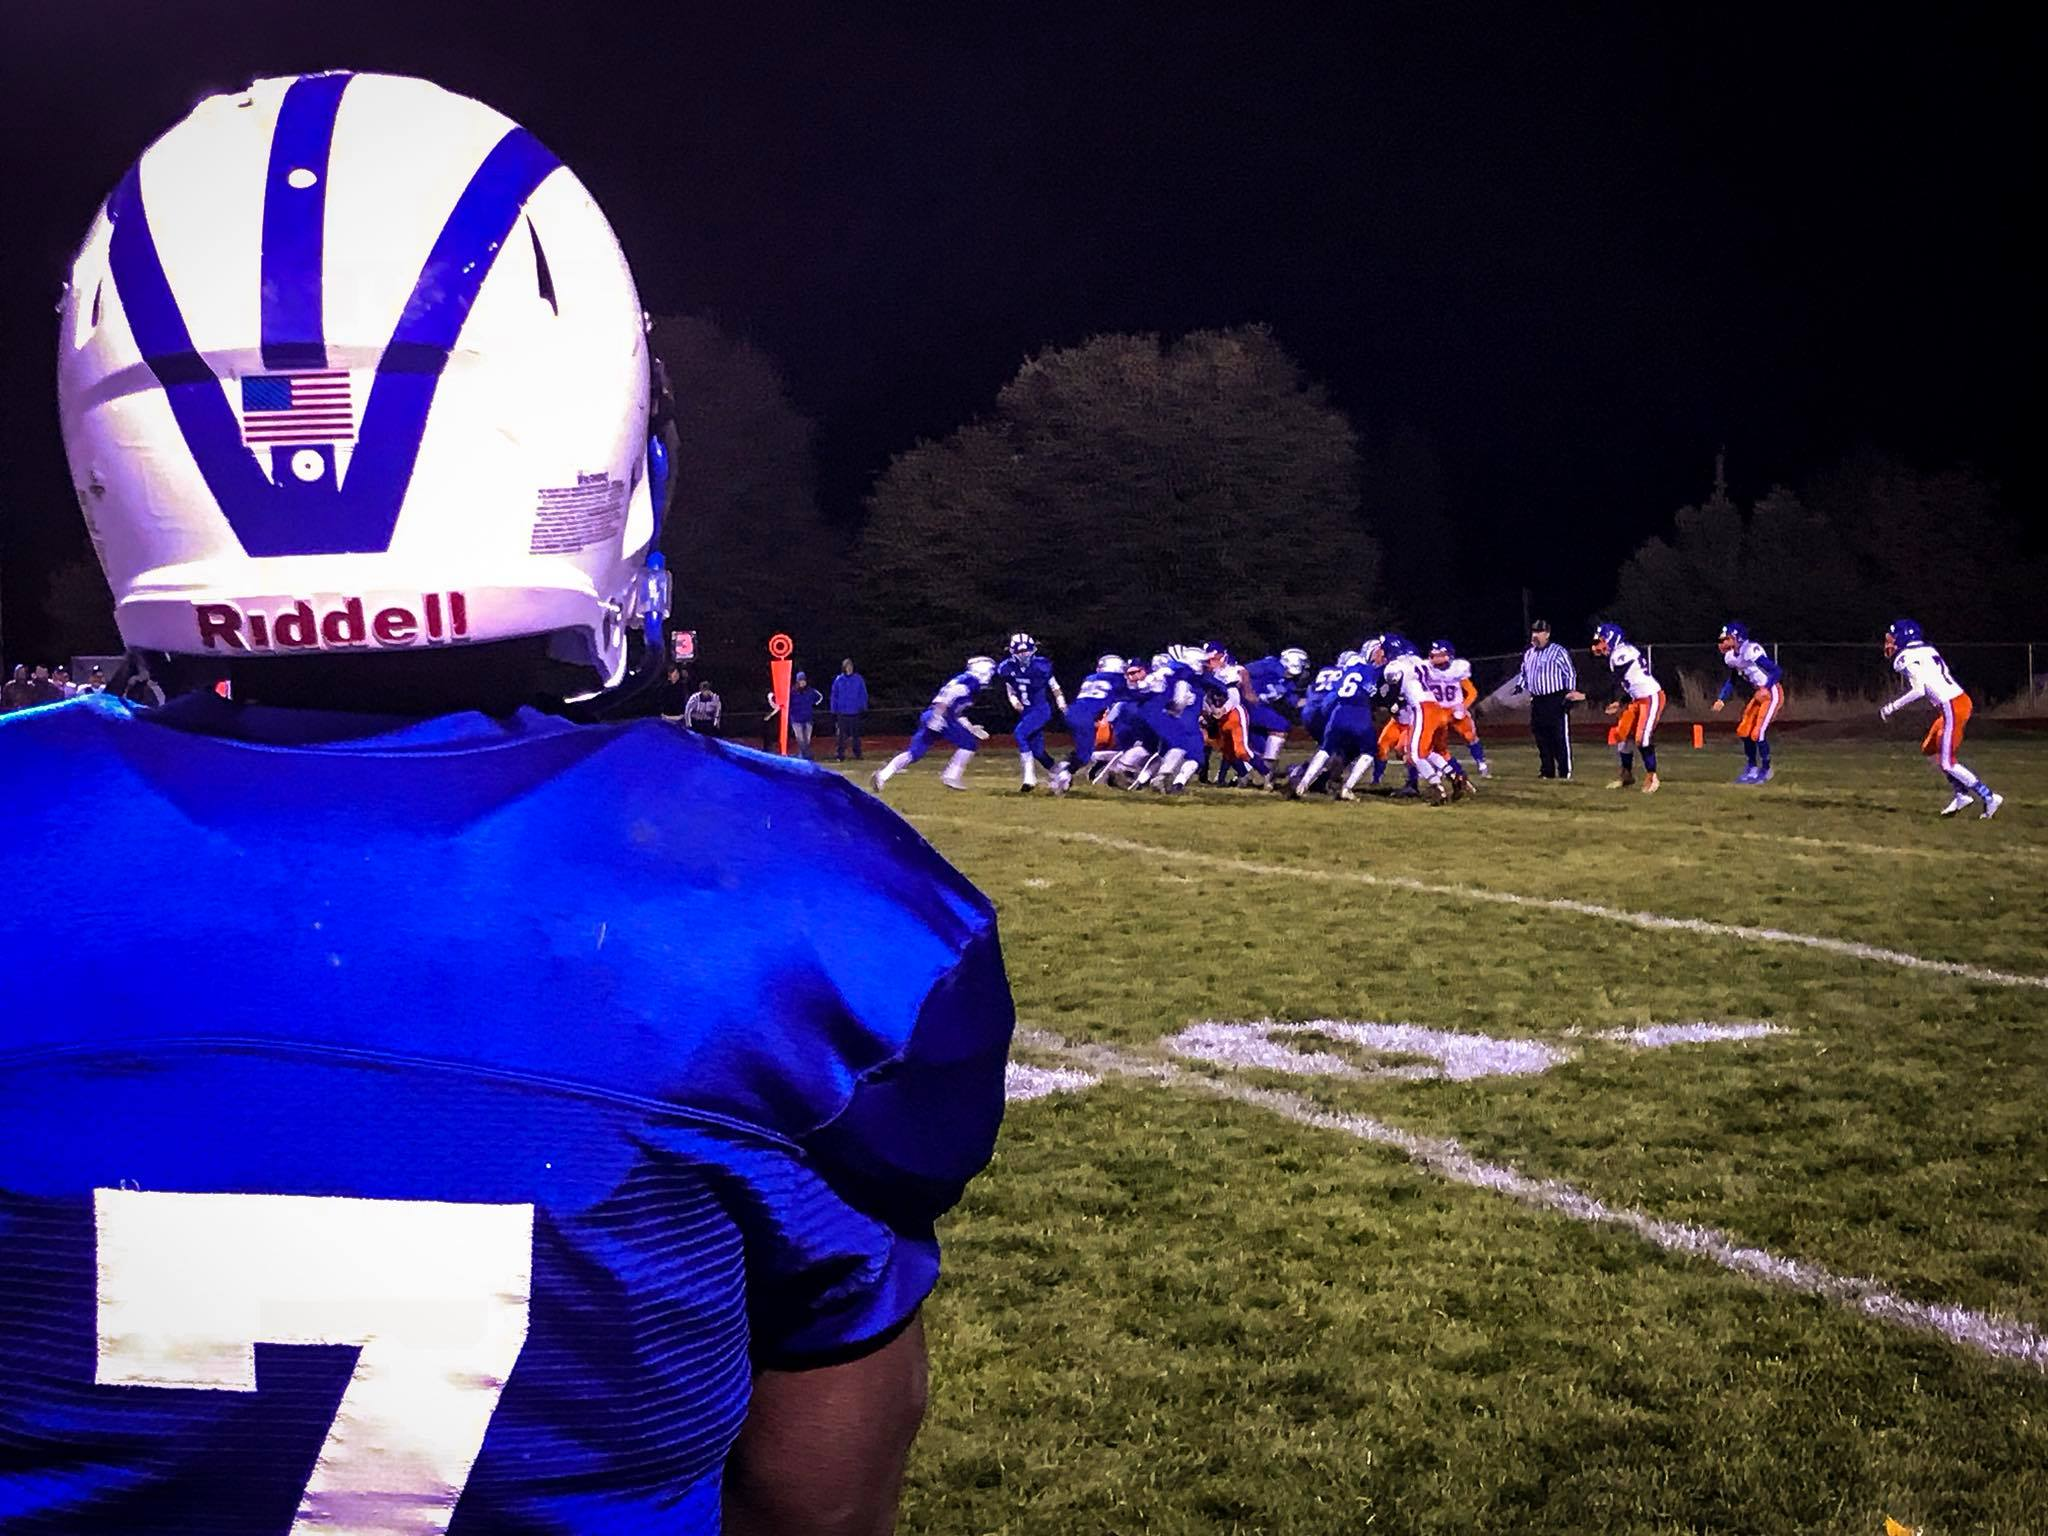 End of the 3rd |Game of the Week - Hidden Valley at Mazama. Mazama leads over Hidden Valley 54-6. (Brian Gailey)